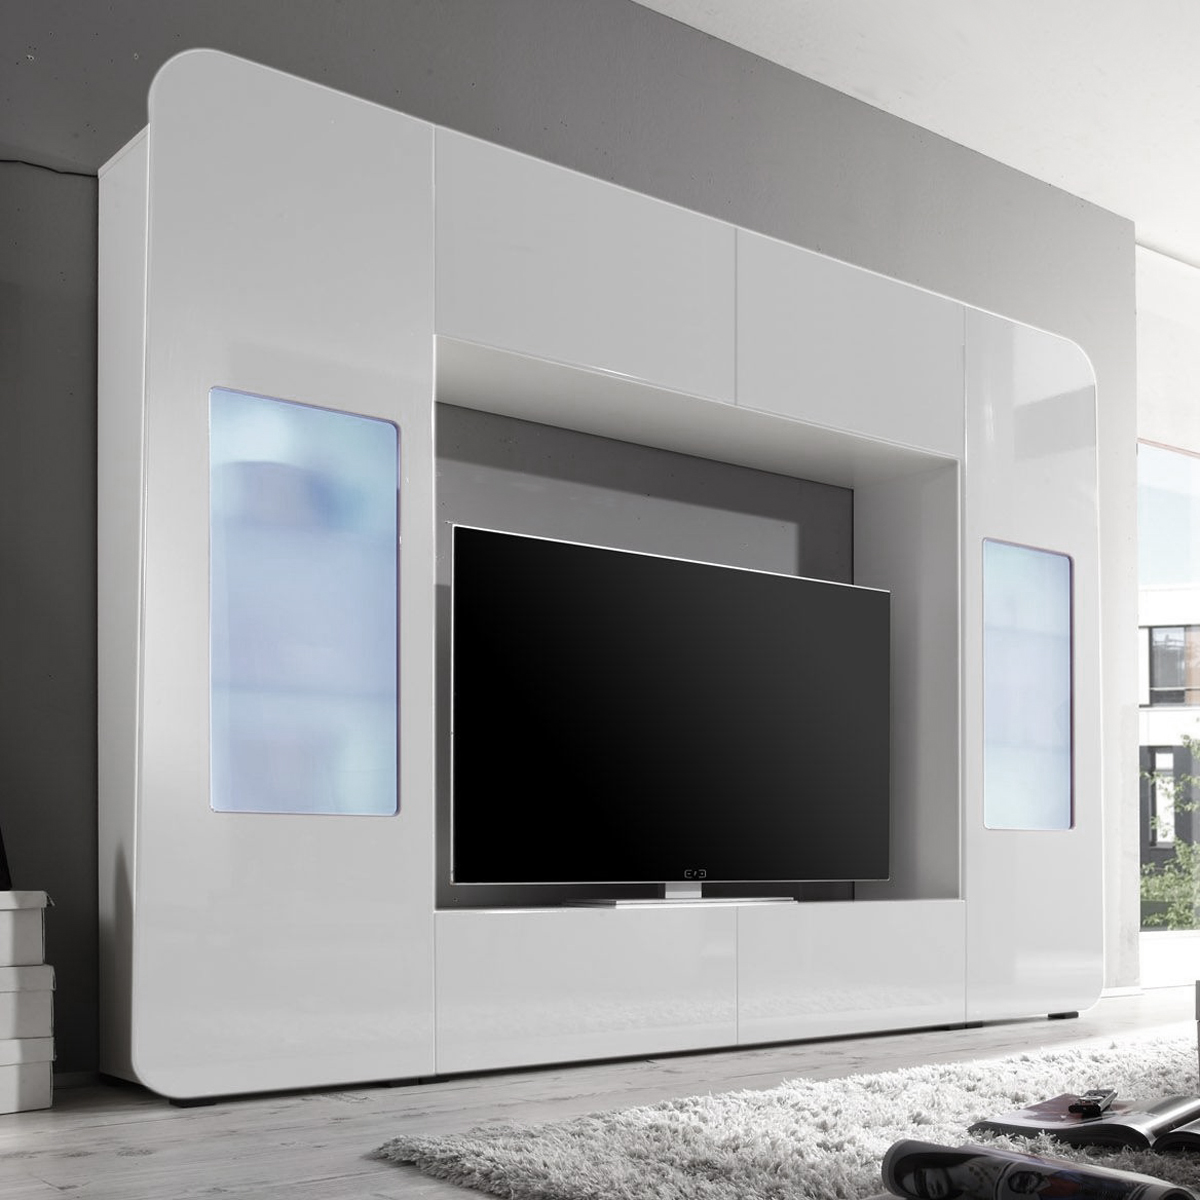 wohnzimmer schrankwand modern luxus wohnzimmer. Black Bedroom Furniture Sets. Home Design Ideas